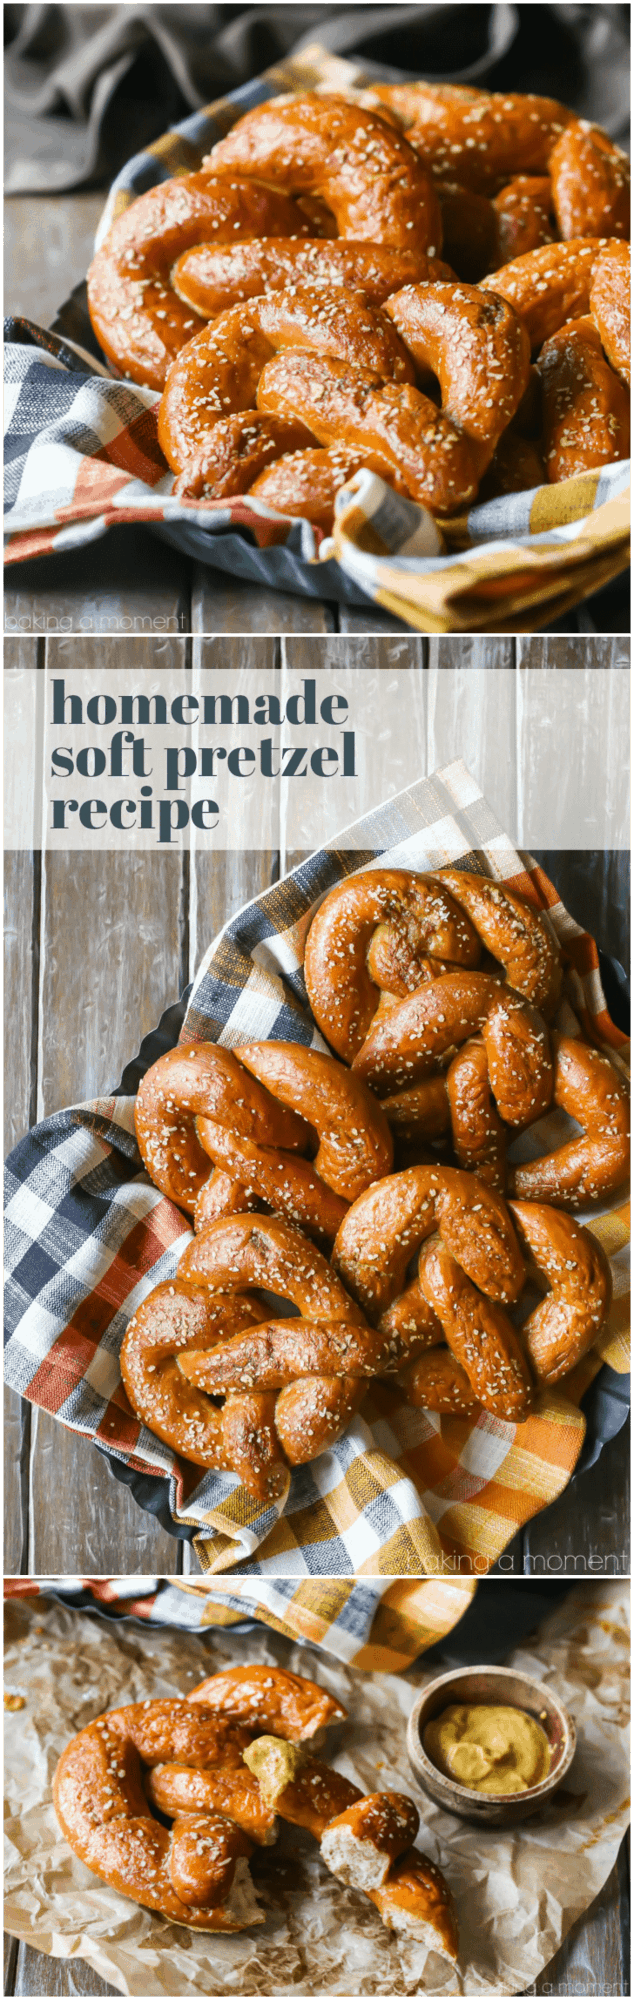 Homemade Soft Pretzel Recipe: I followed the steps and they came out perfectly! Hot, soft, and chewy, with a great yeasty flavor. Perfect with a sprinkling of crunchy salt and a dip in grainy mustard! #food #recipes #breads